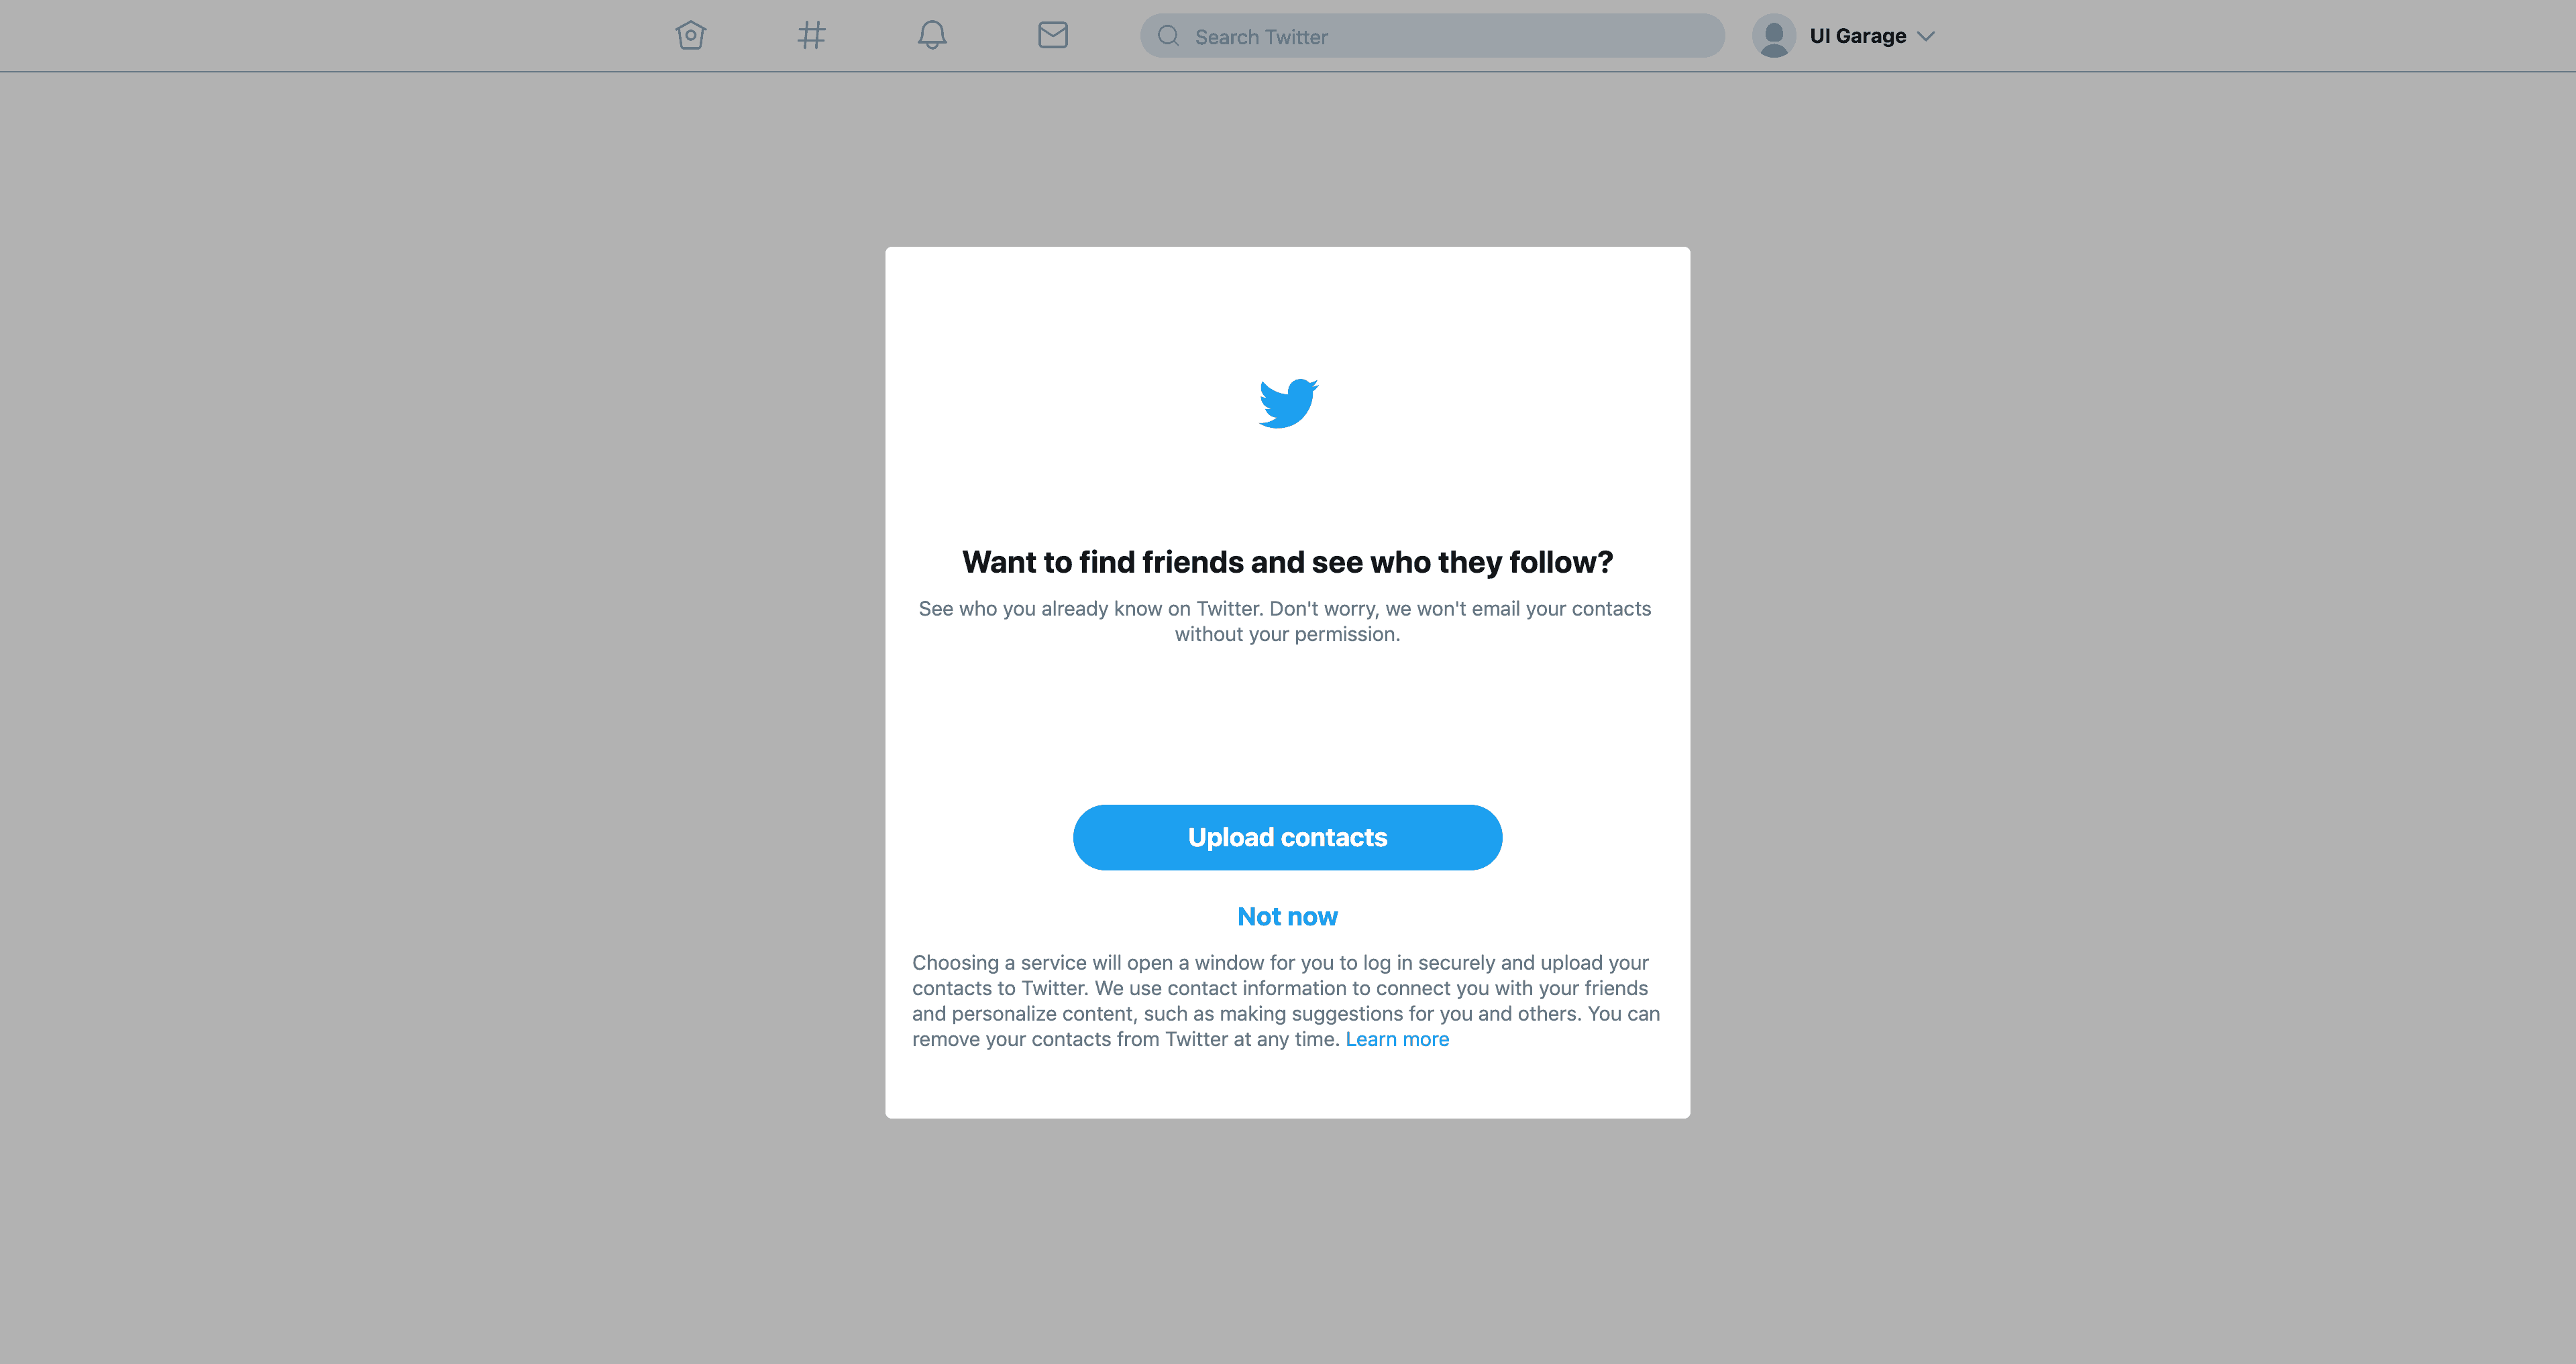 Ask permission for uploading contacts by Twitter from UIGarage